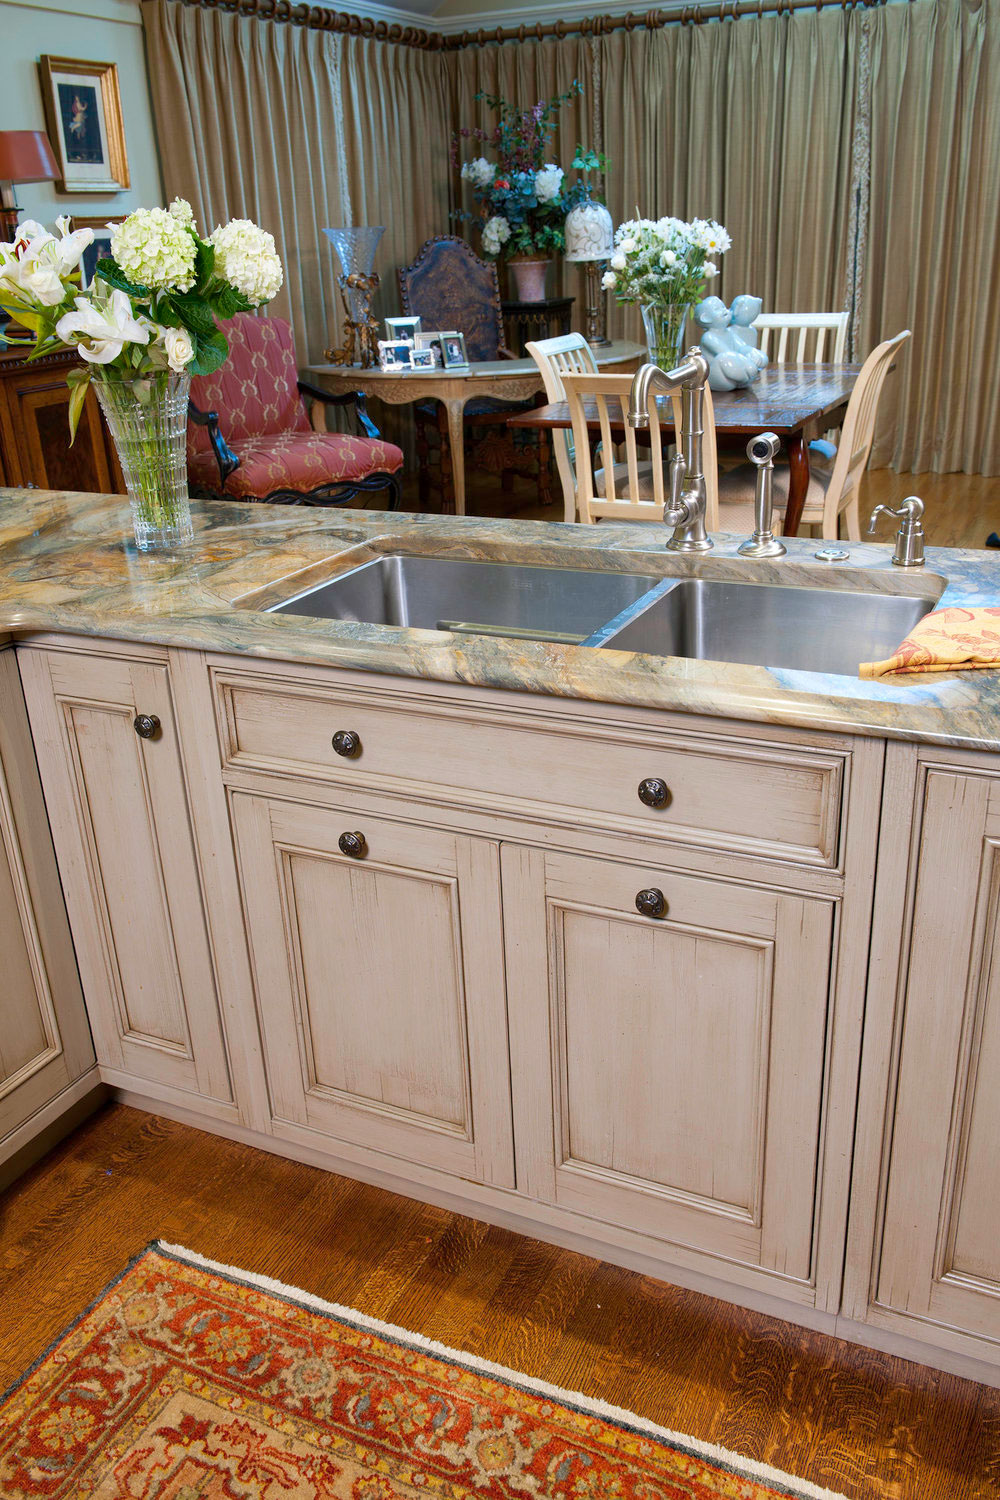 kitchen_bath_Concepts_pittsburgh_traditional_home5_16.jpg